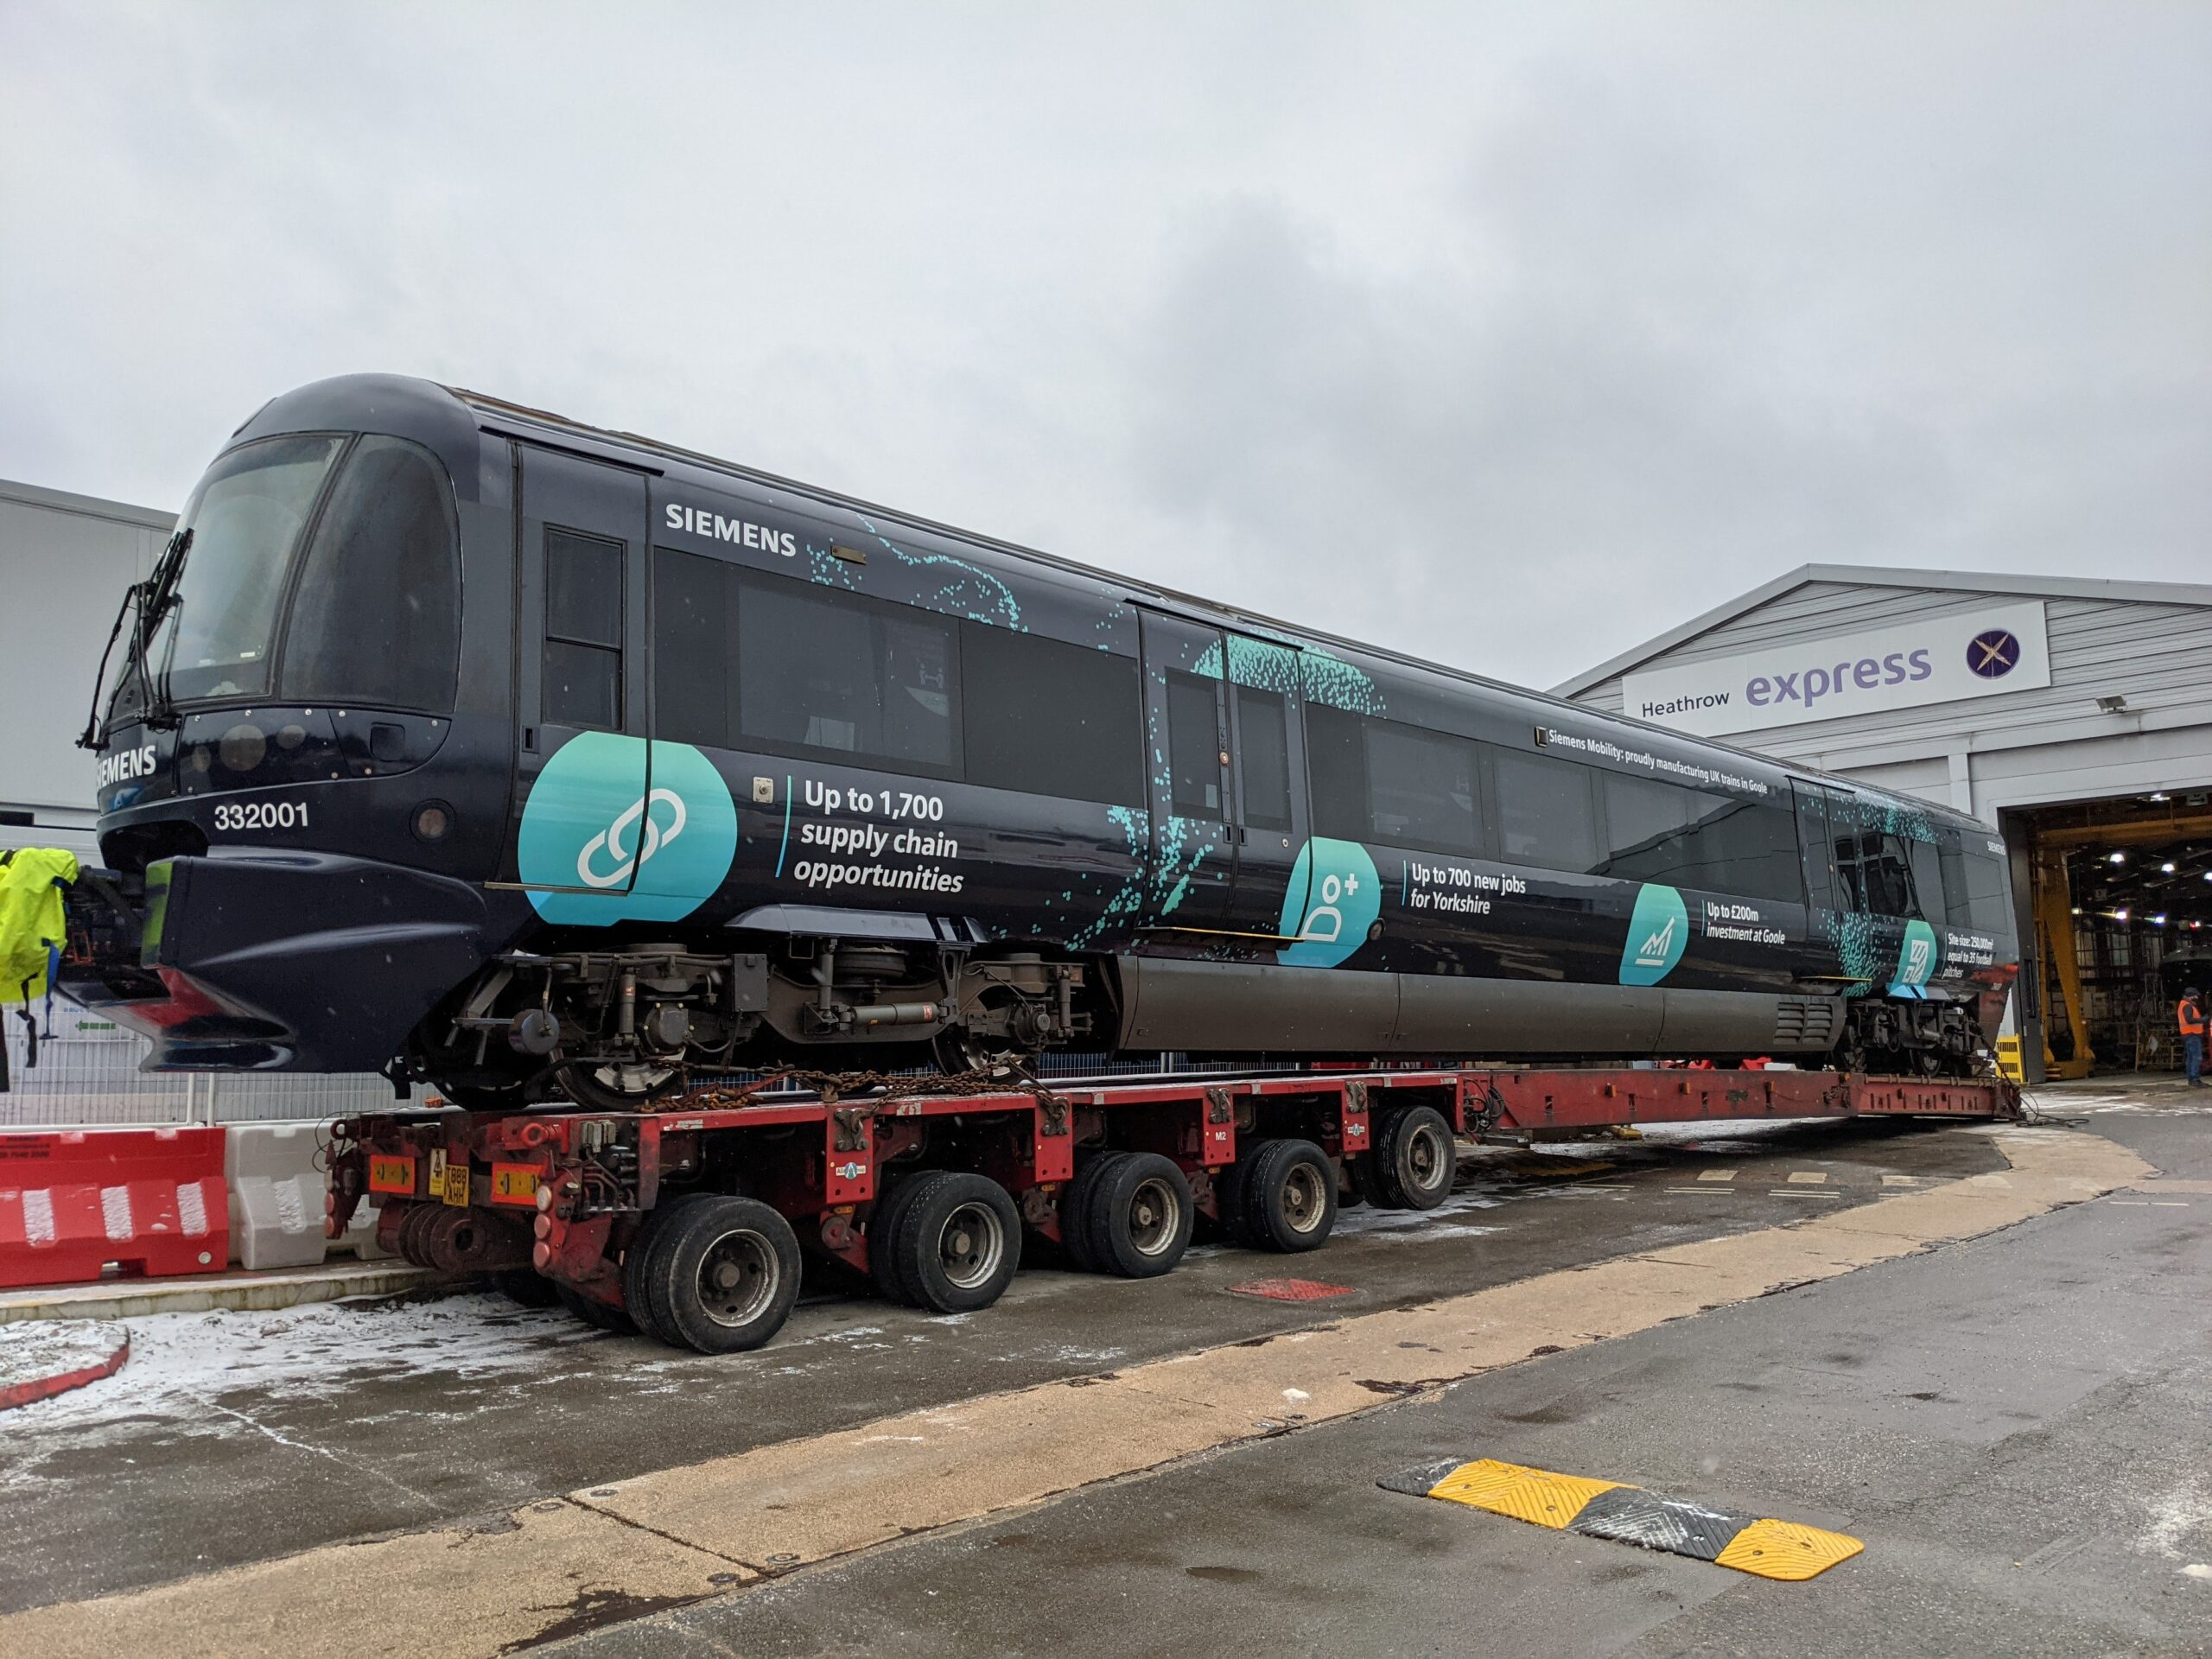 Heathrow Express train leaves its depot on a low loader